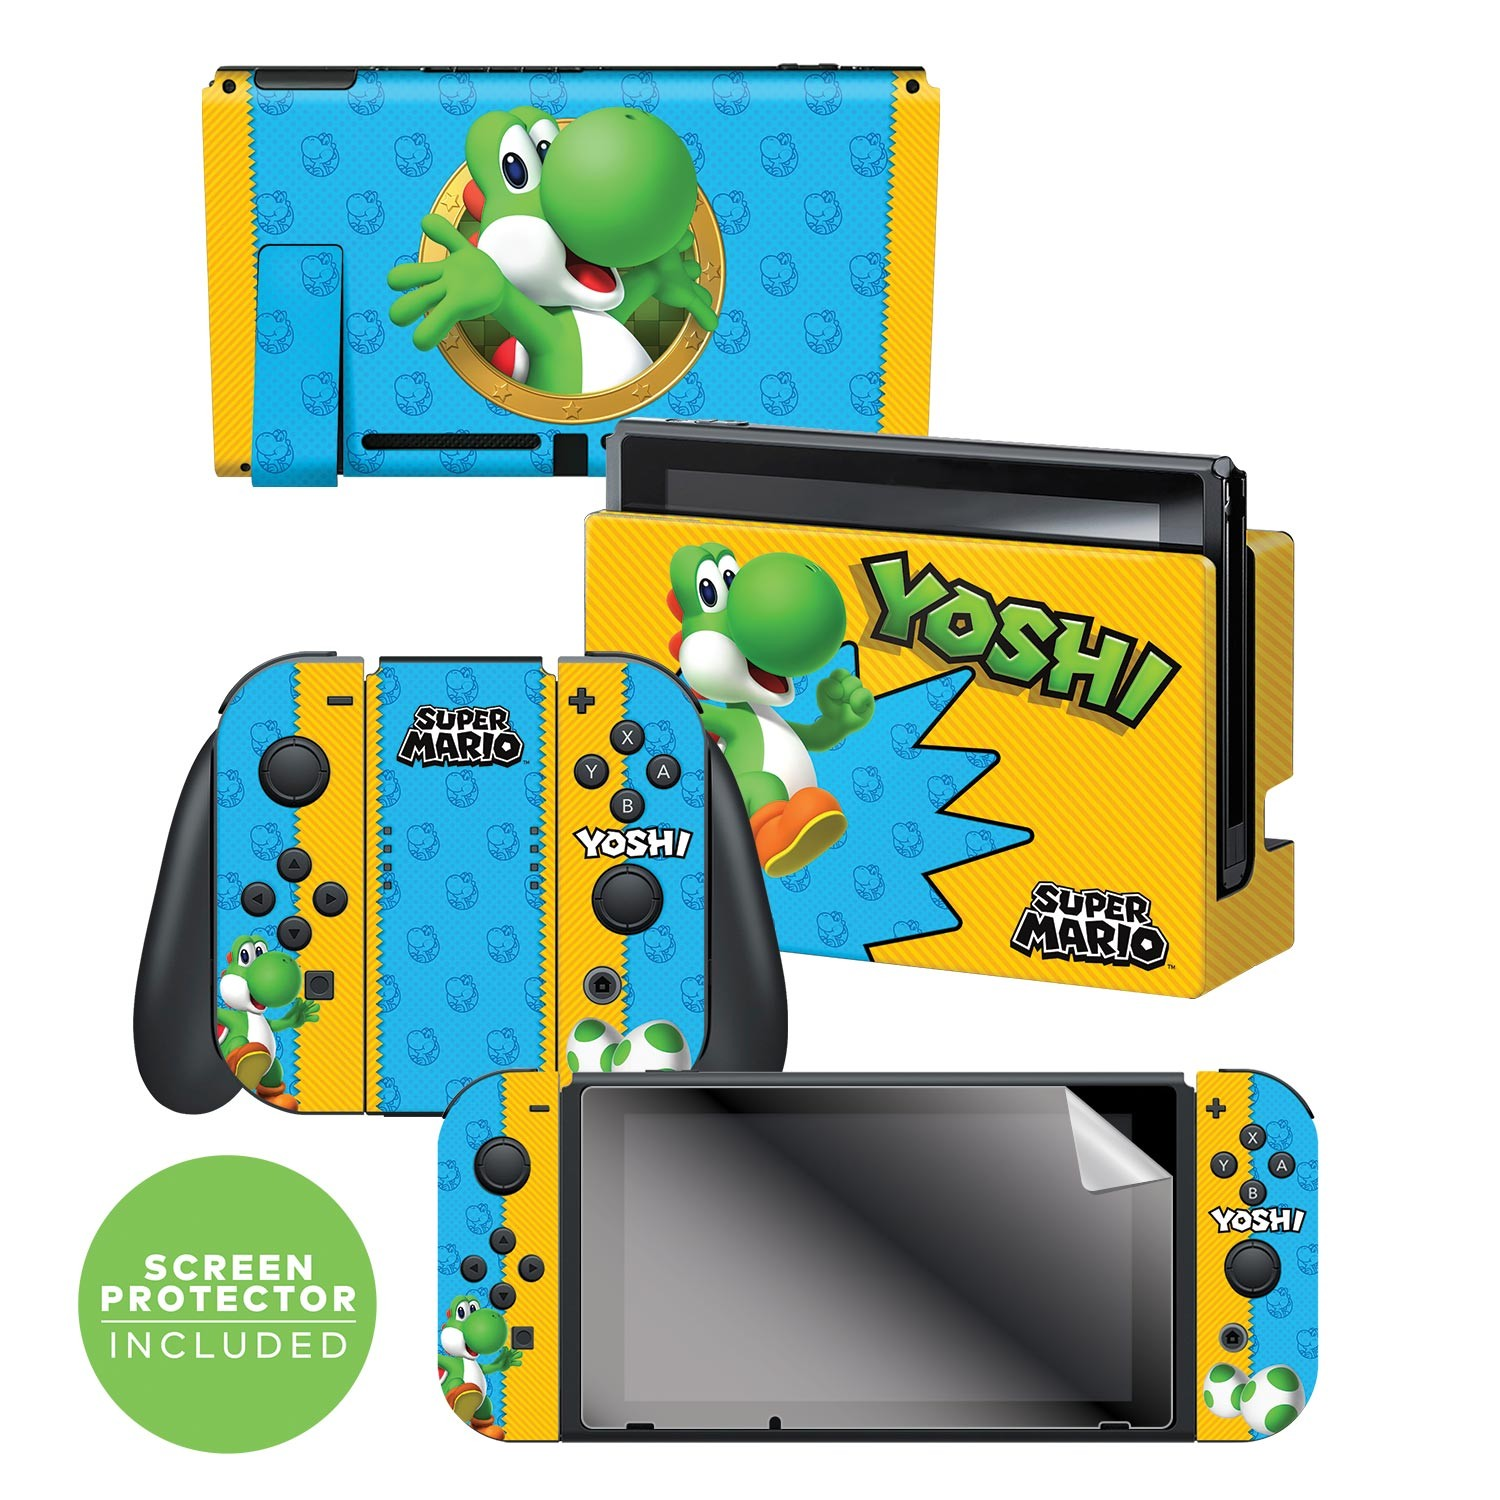 "Super Mario™ ""Yoshi"" Nintendo Switch™ Console skin + Dock Skin + Joy-Con™ skin +  Joy-Con™ Grip Skin + Screen Protector Bundle Assortment, Officially Licensed by Nintendo"